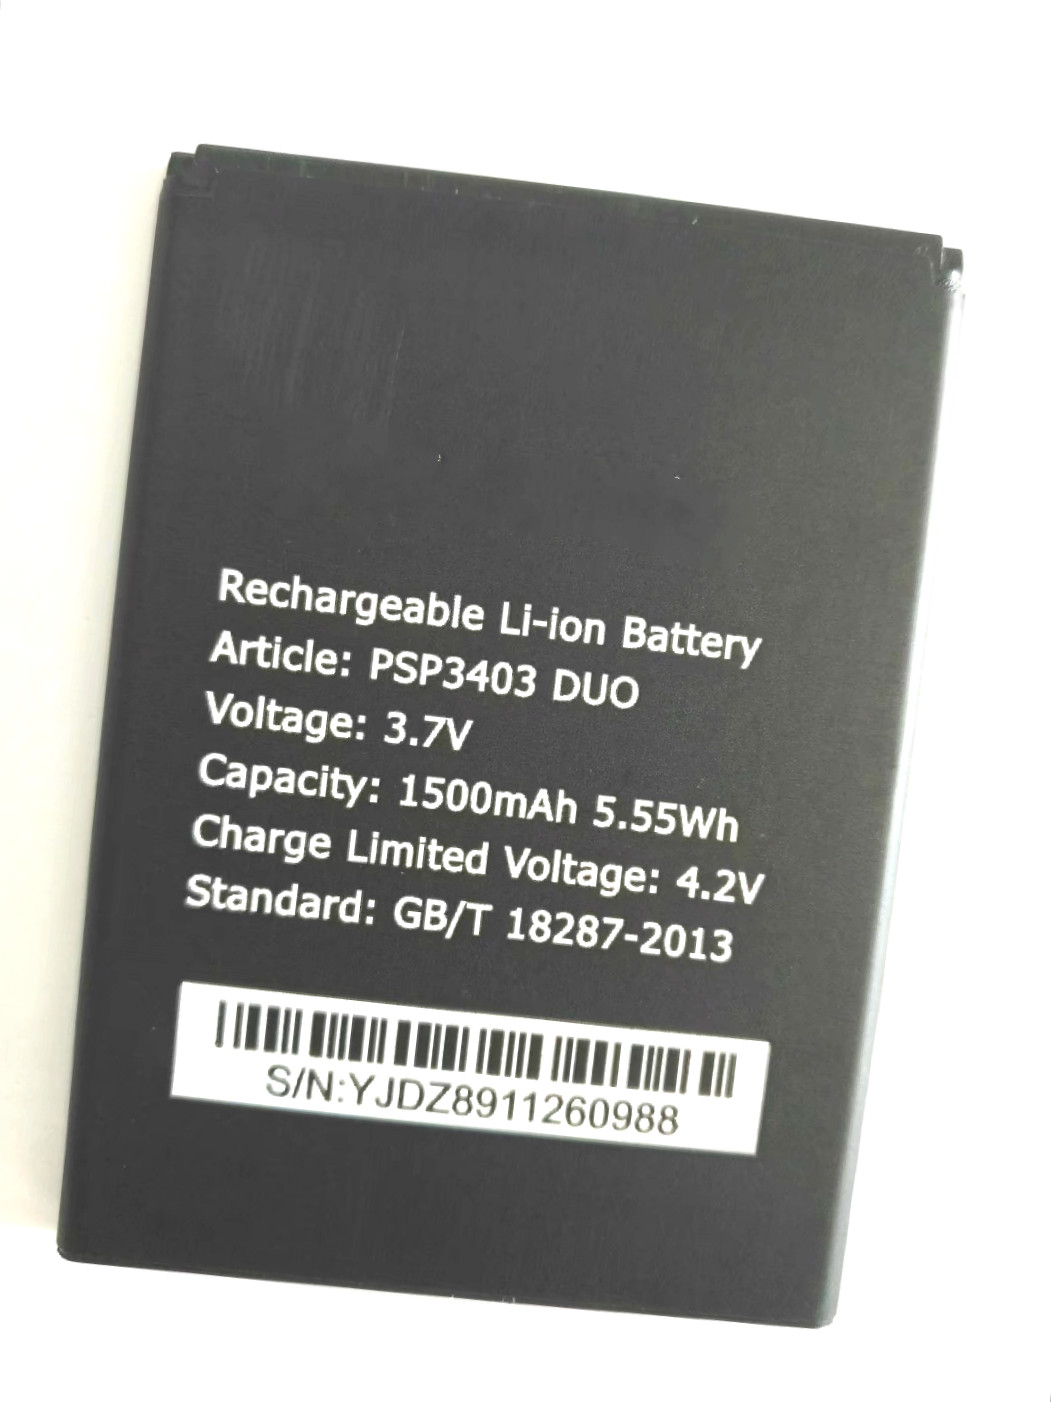 Amiable Westrock 1500mah Psp3403 Duo Battery For Prestigio Psp3403 Wize L3 Cell Phone Fashionable And Attractive Packages Tablet Accessories Computer & Office